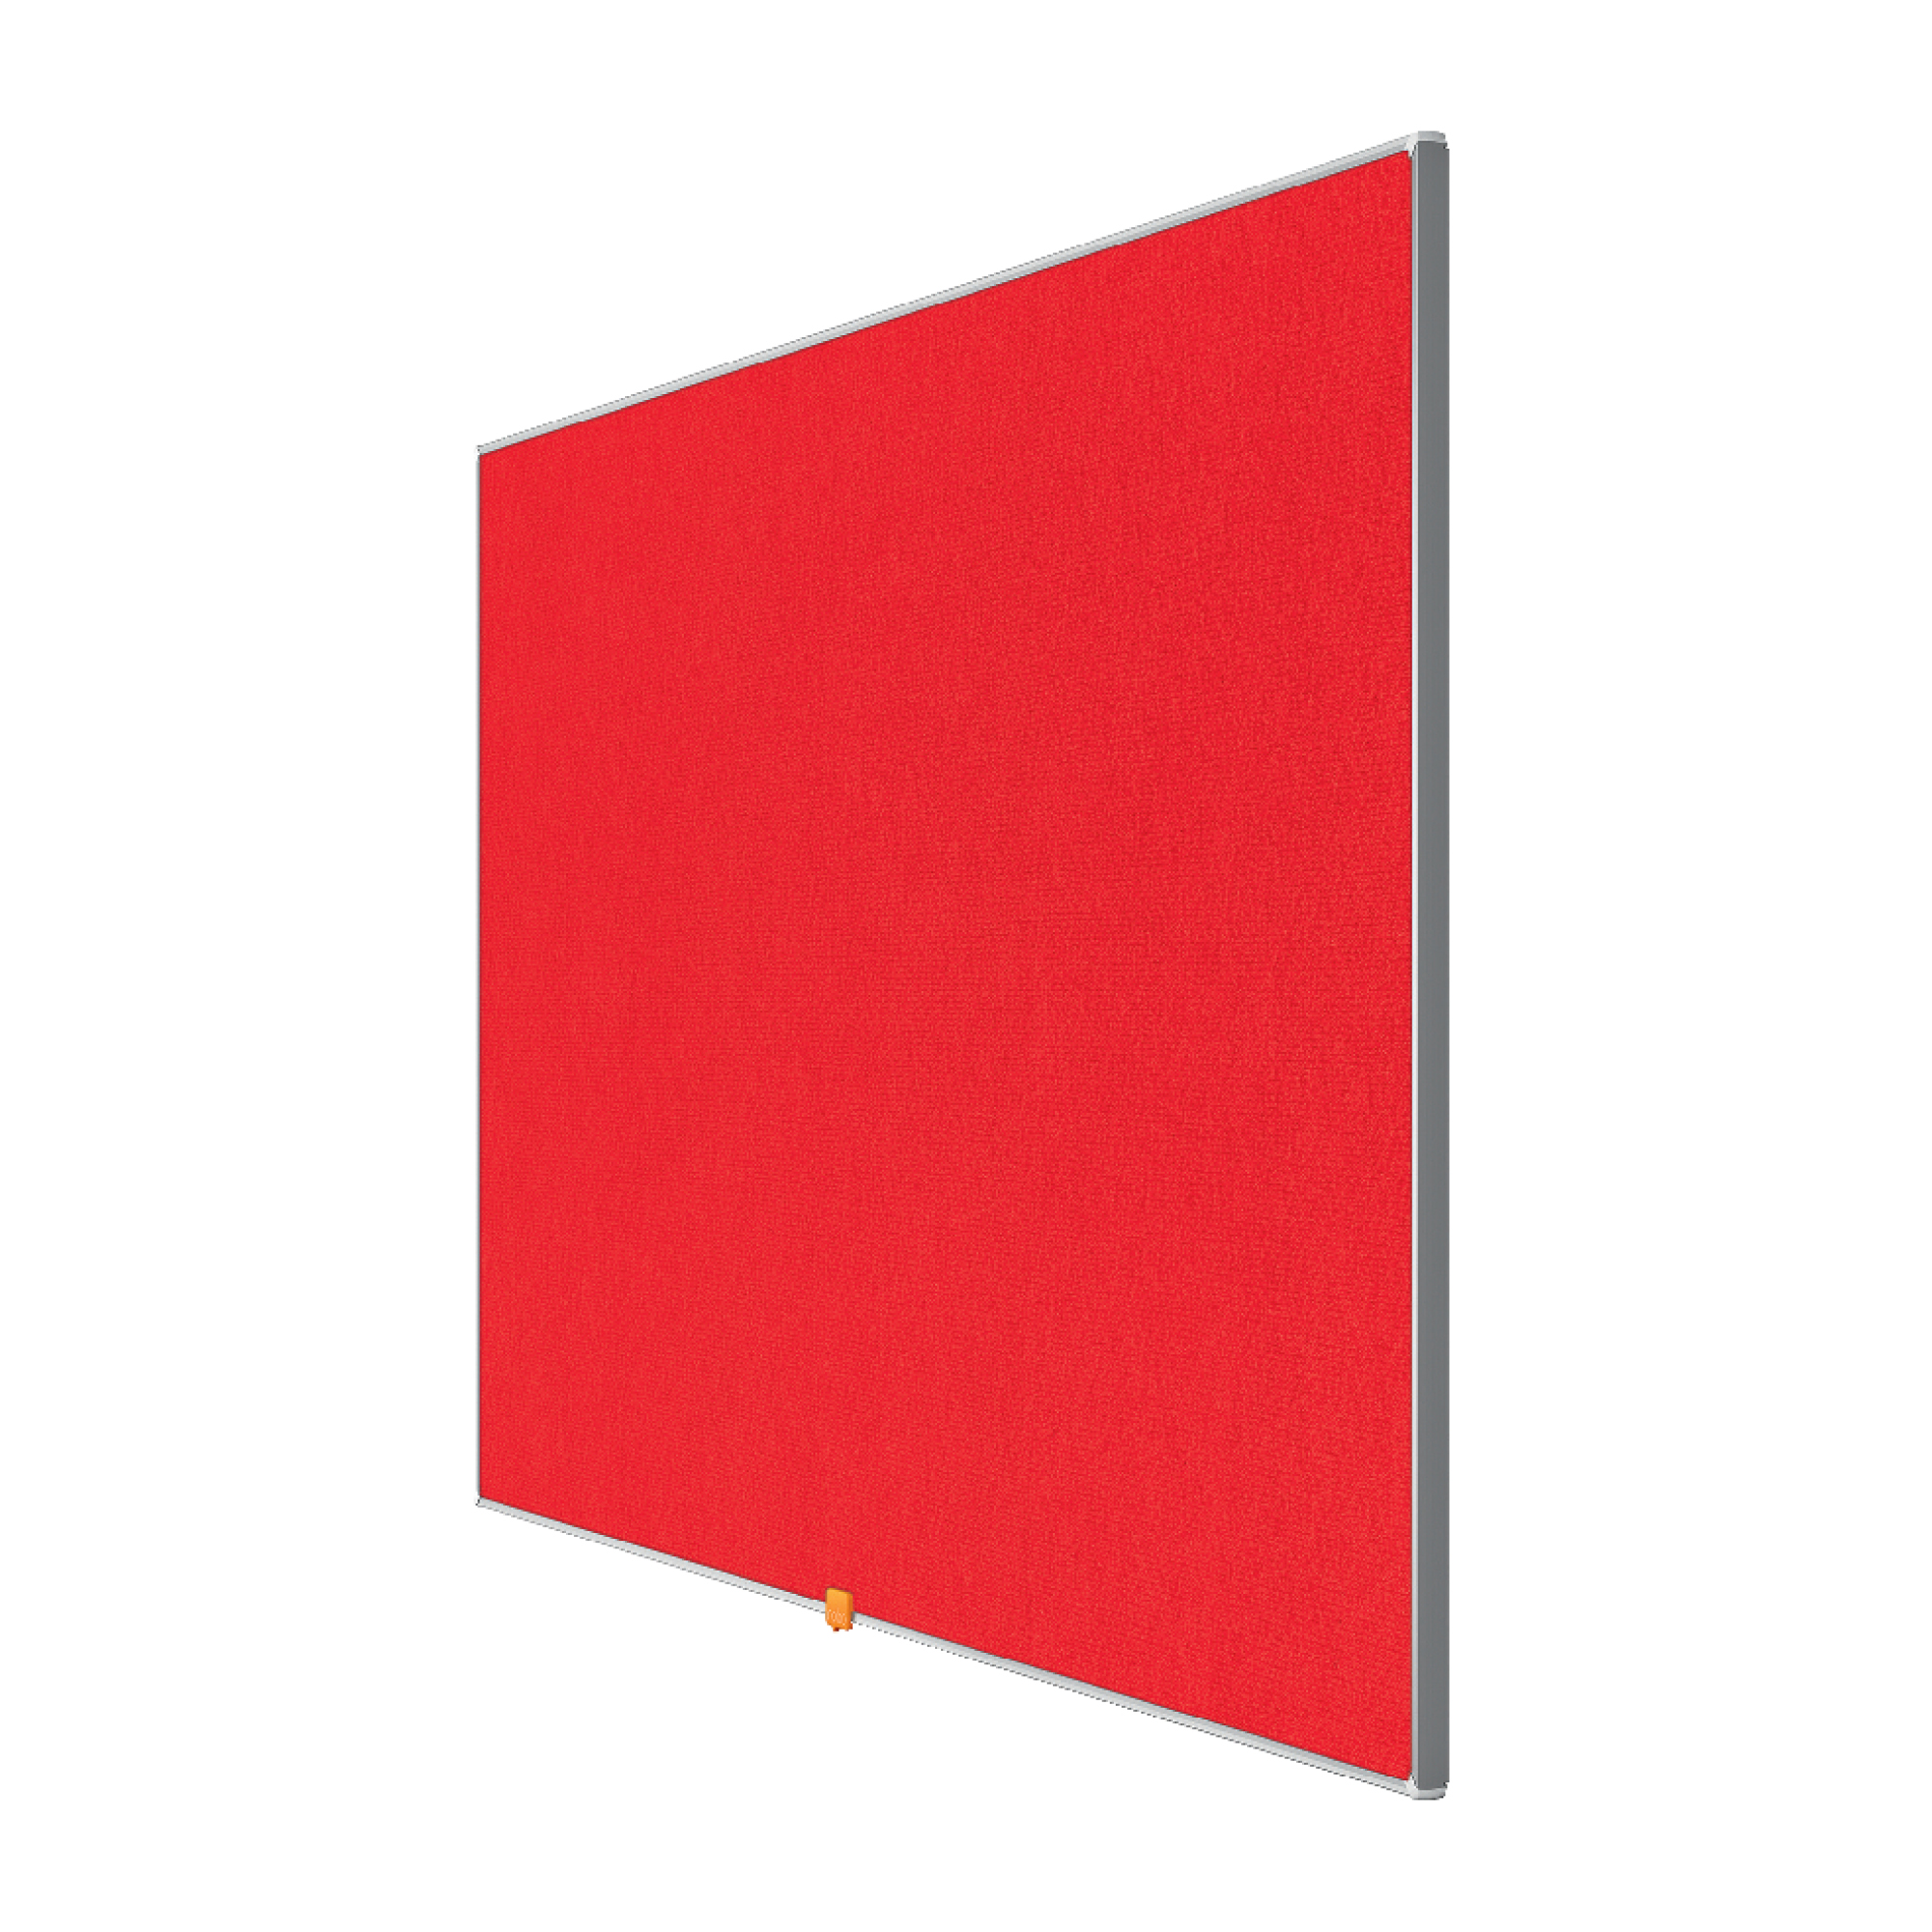 Bulletin boards or accessories Nobo 55 inch Widescreen Felt Board 1220x690mm Red Ref 1905312